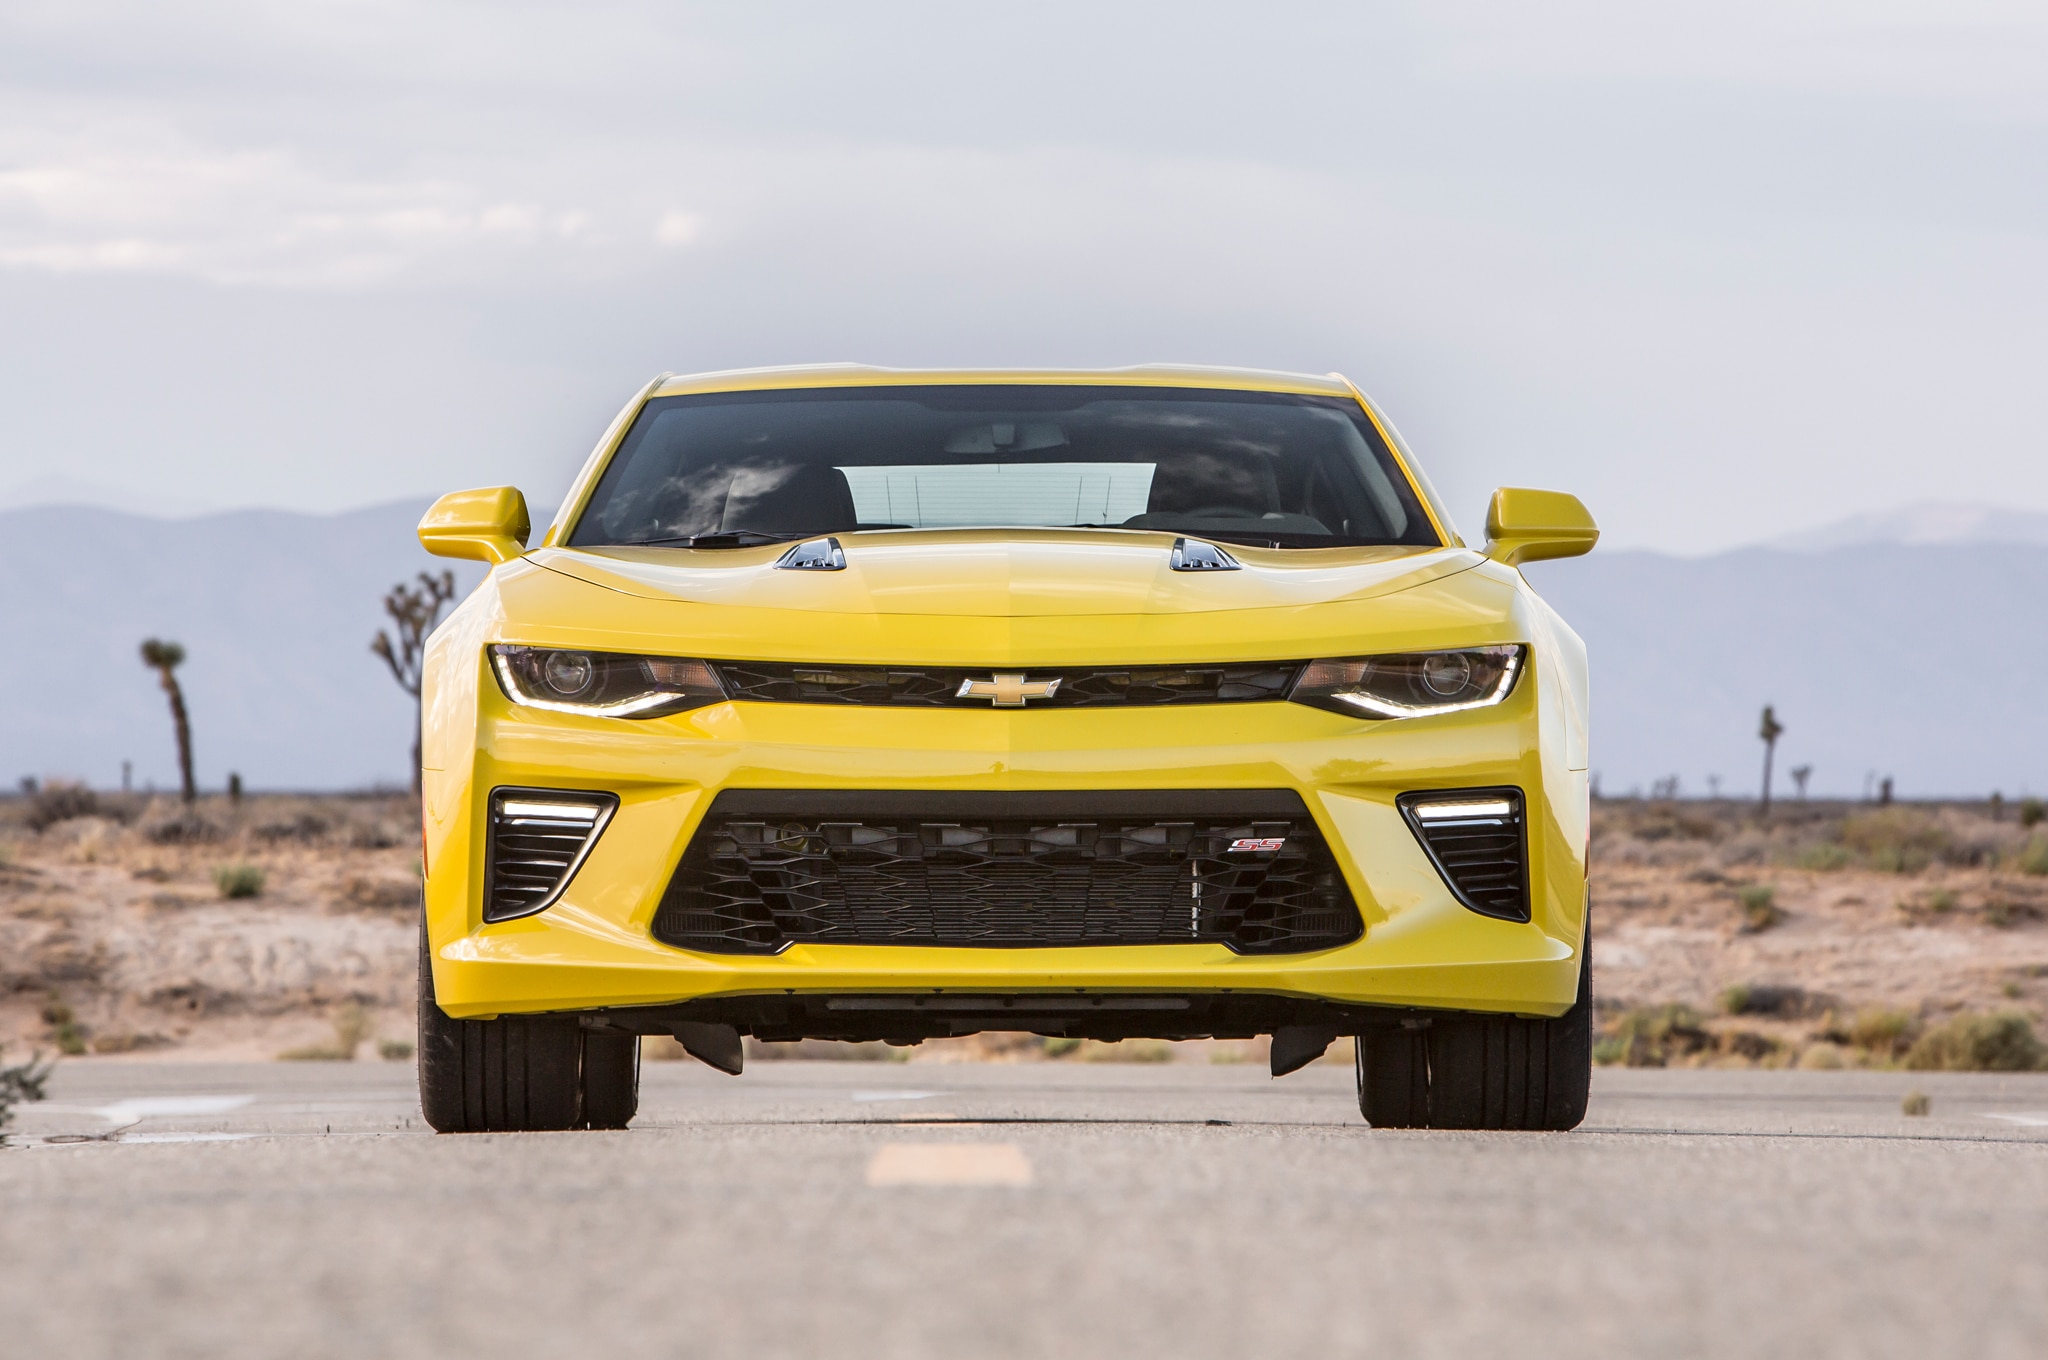 chevrolet camaro ss 2016 obtiene 28 mpg en carretera. Black Bedroom Furniture Sets. Home Design Ideas